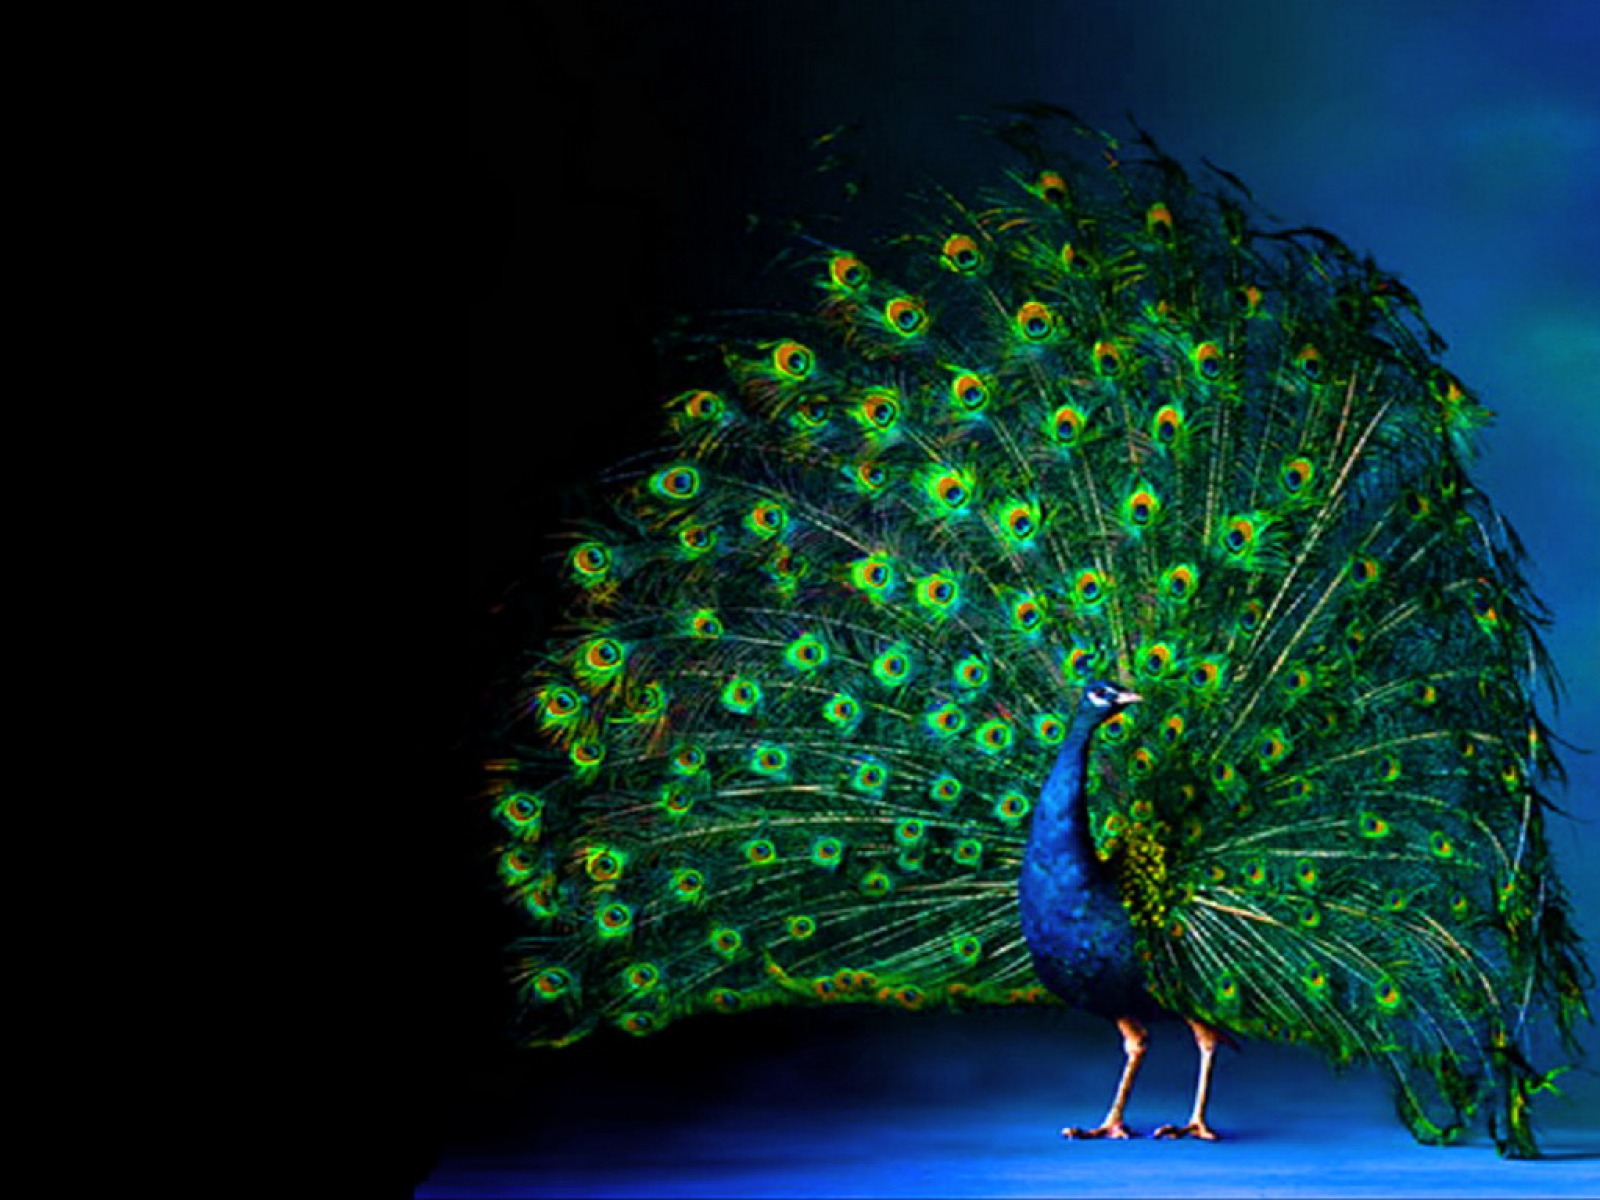 Peacock Art Photography Wallpaper Hq Backgrounds: Peacock Luminous Feathering Wallpapers